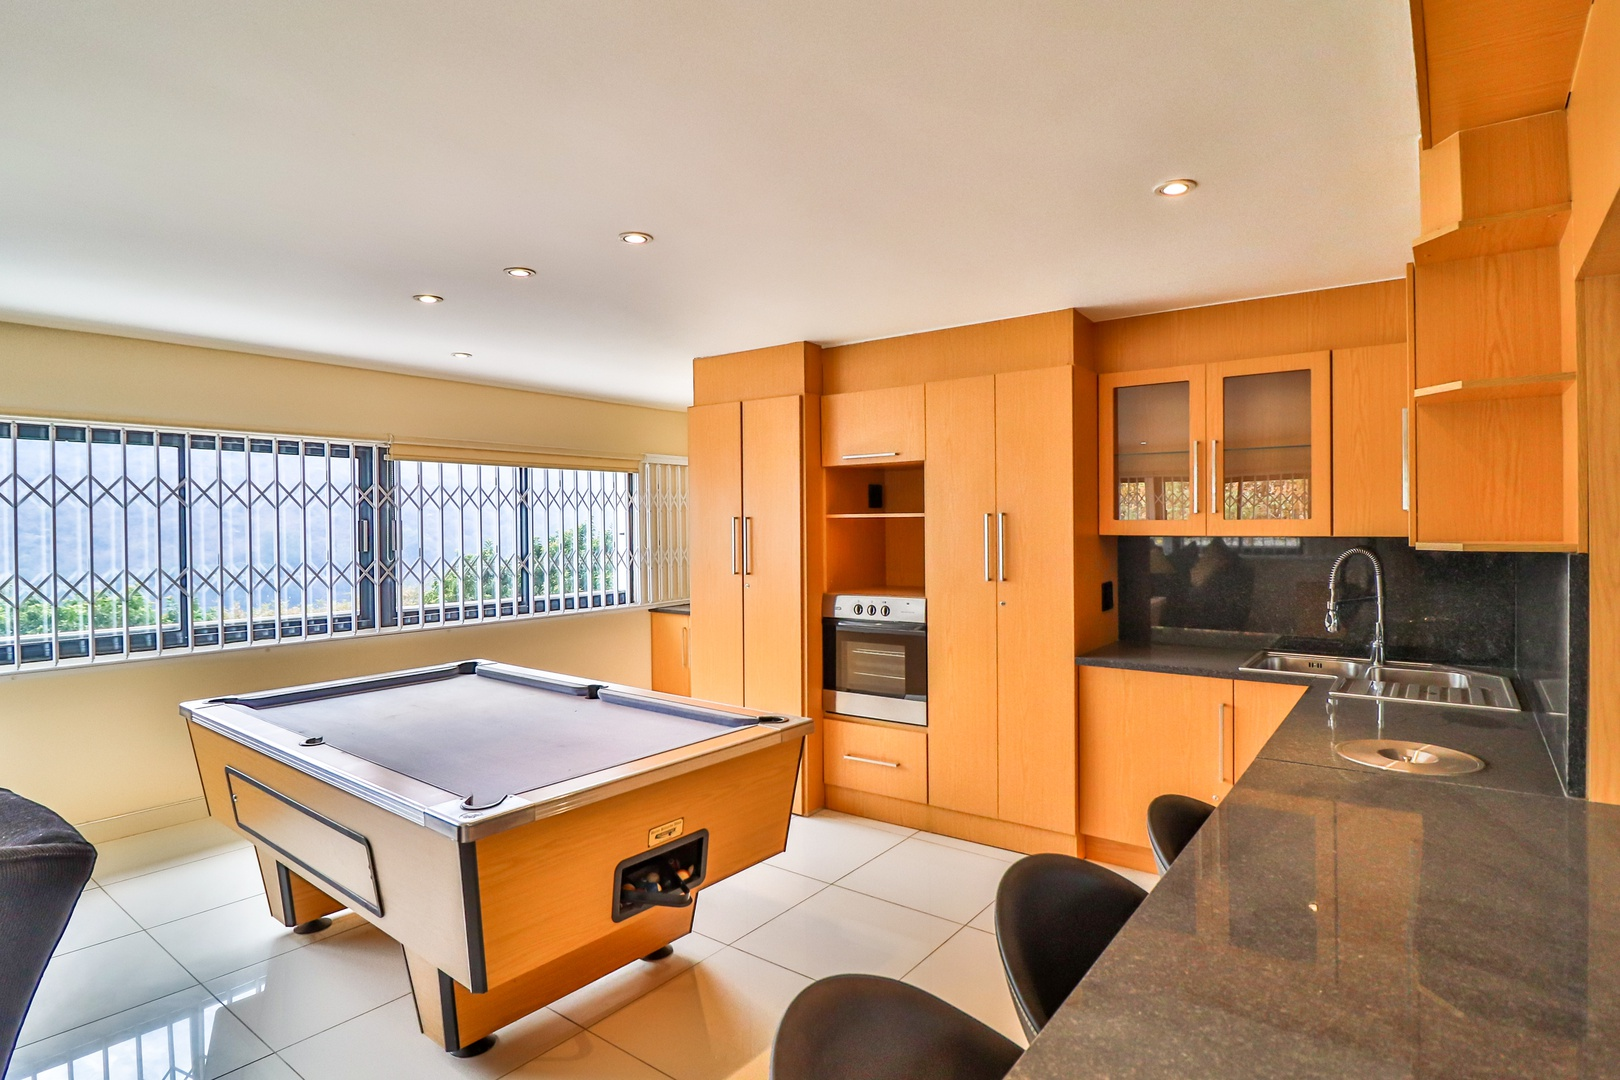 House in Kosmos Village - Activity room has its own kitchenette